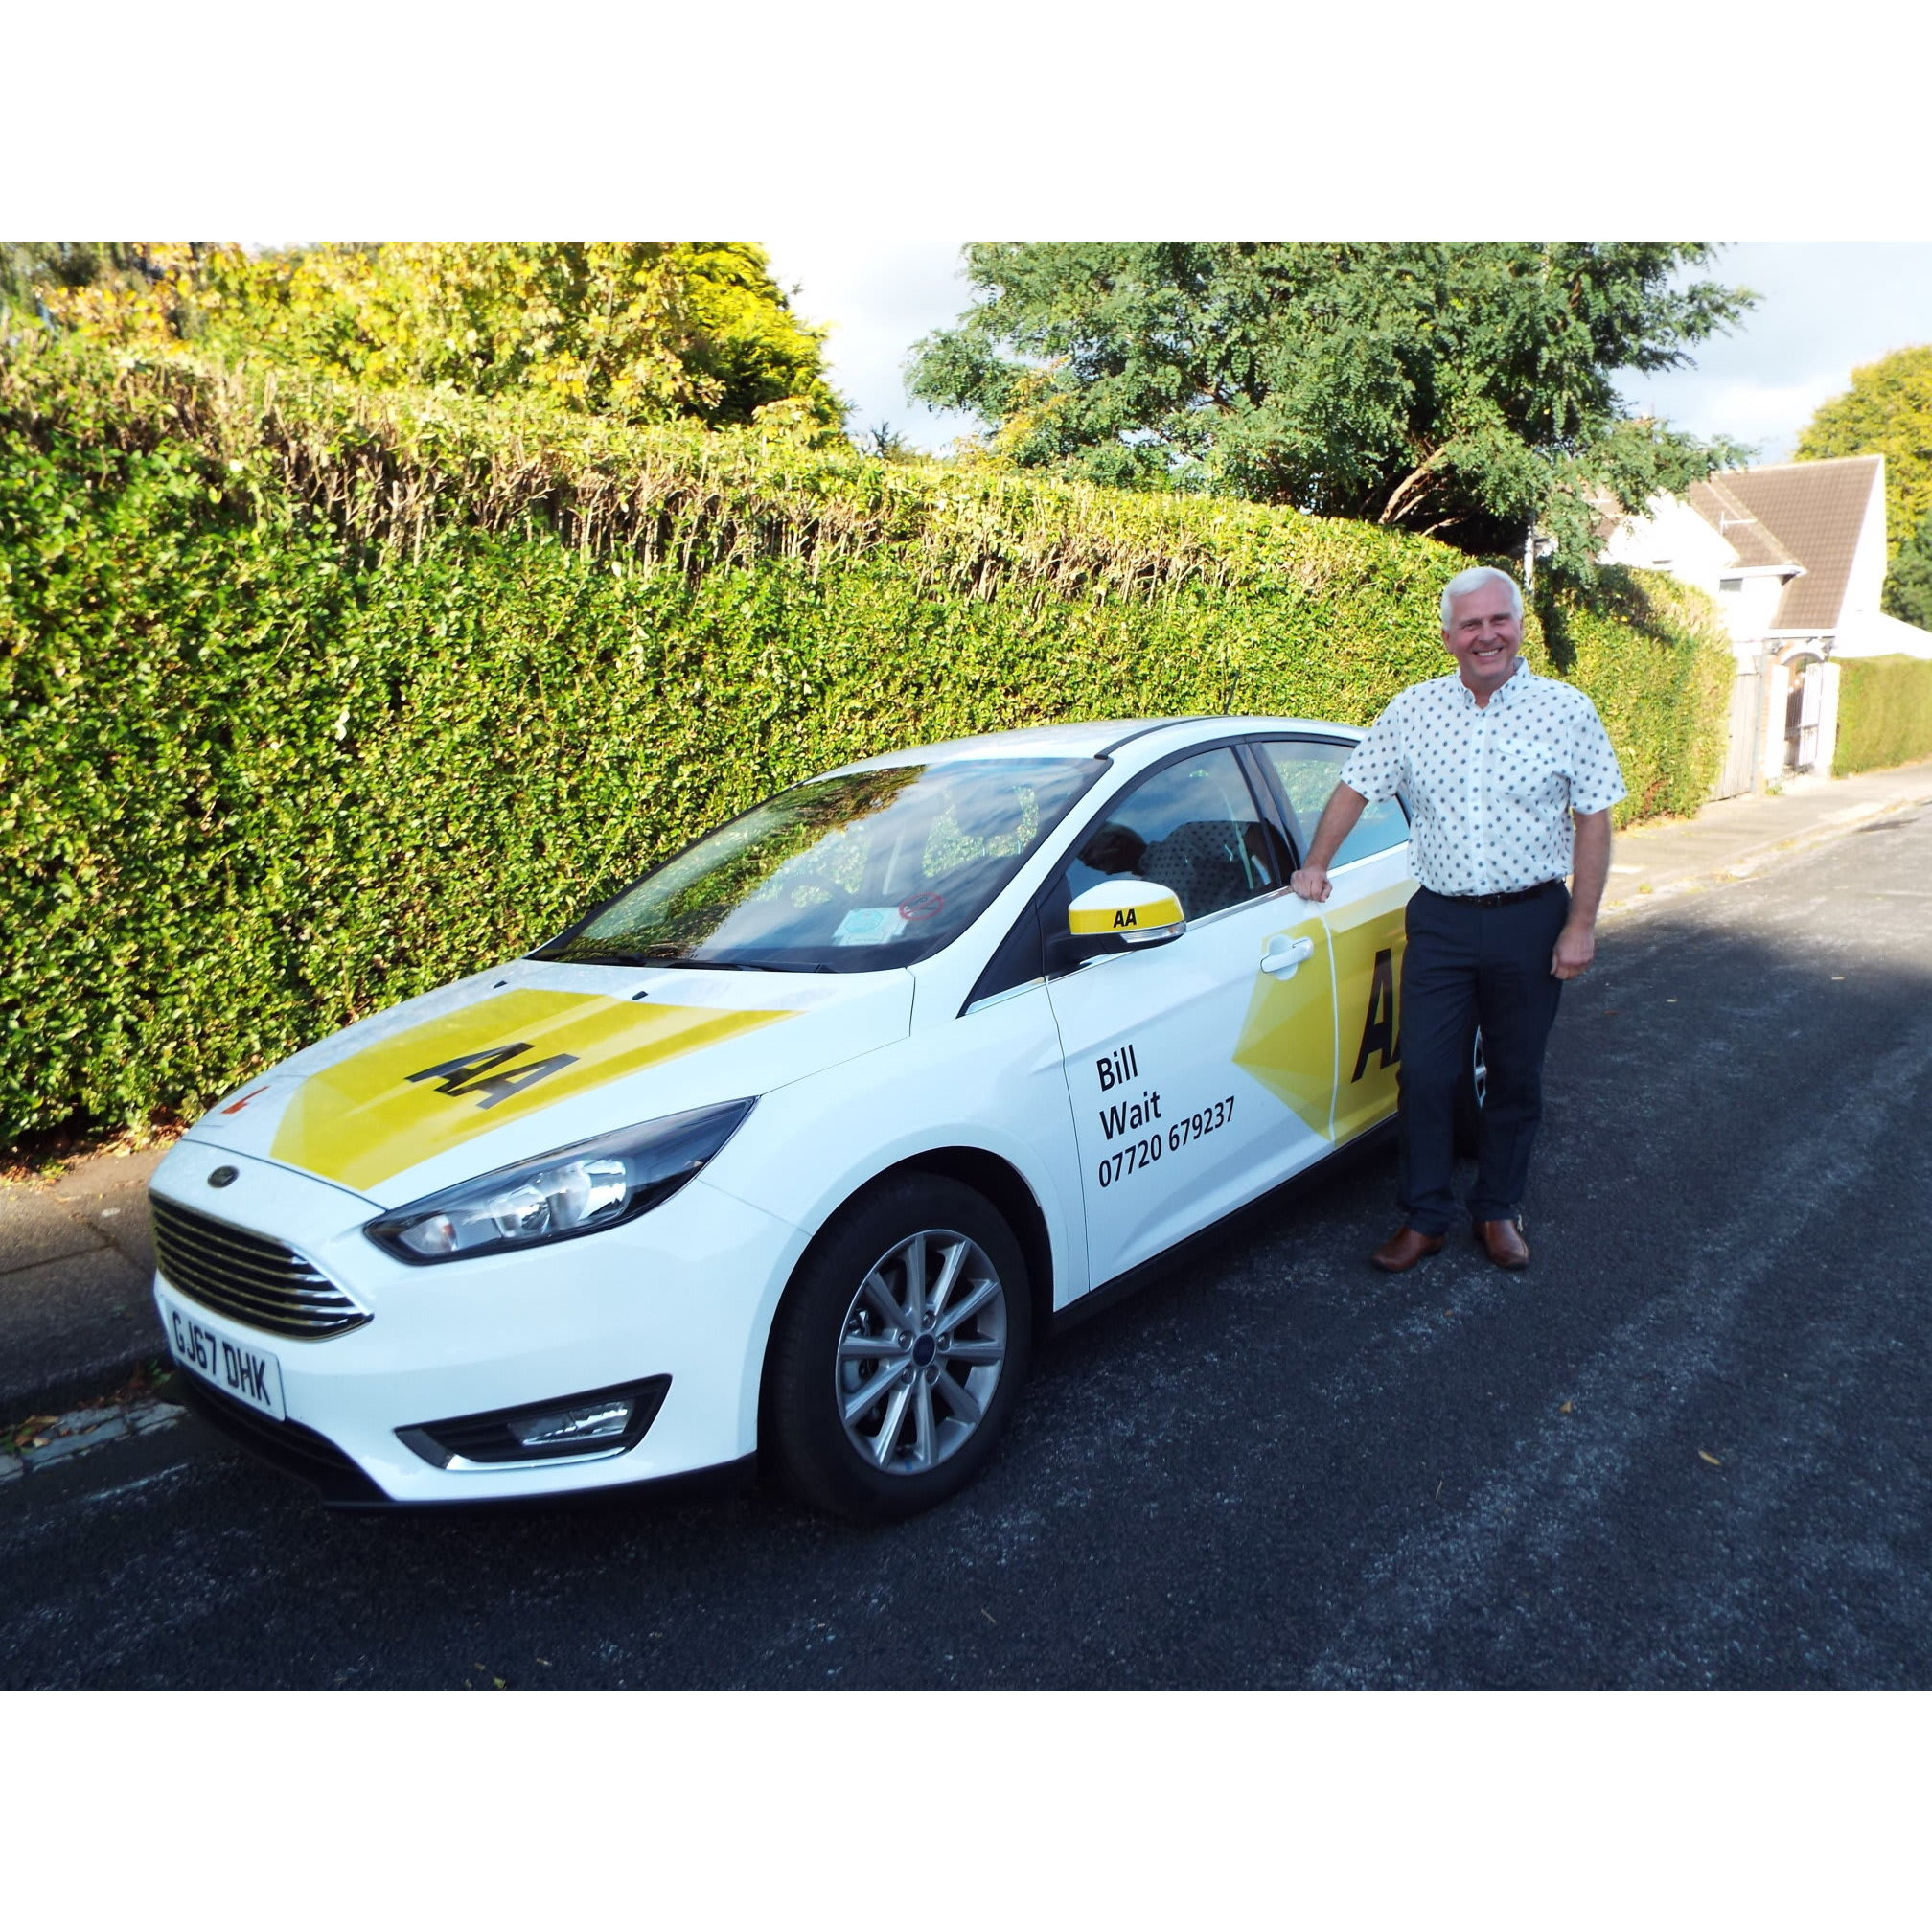 Bill Wait Driving Instructor - Billingham, North Yorkshire TS23 1BZ - 07720 679237 | ShowMeLocal.com